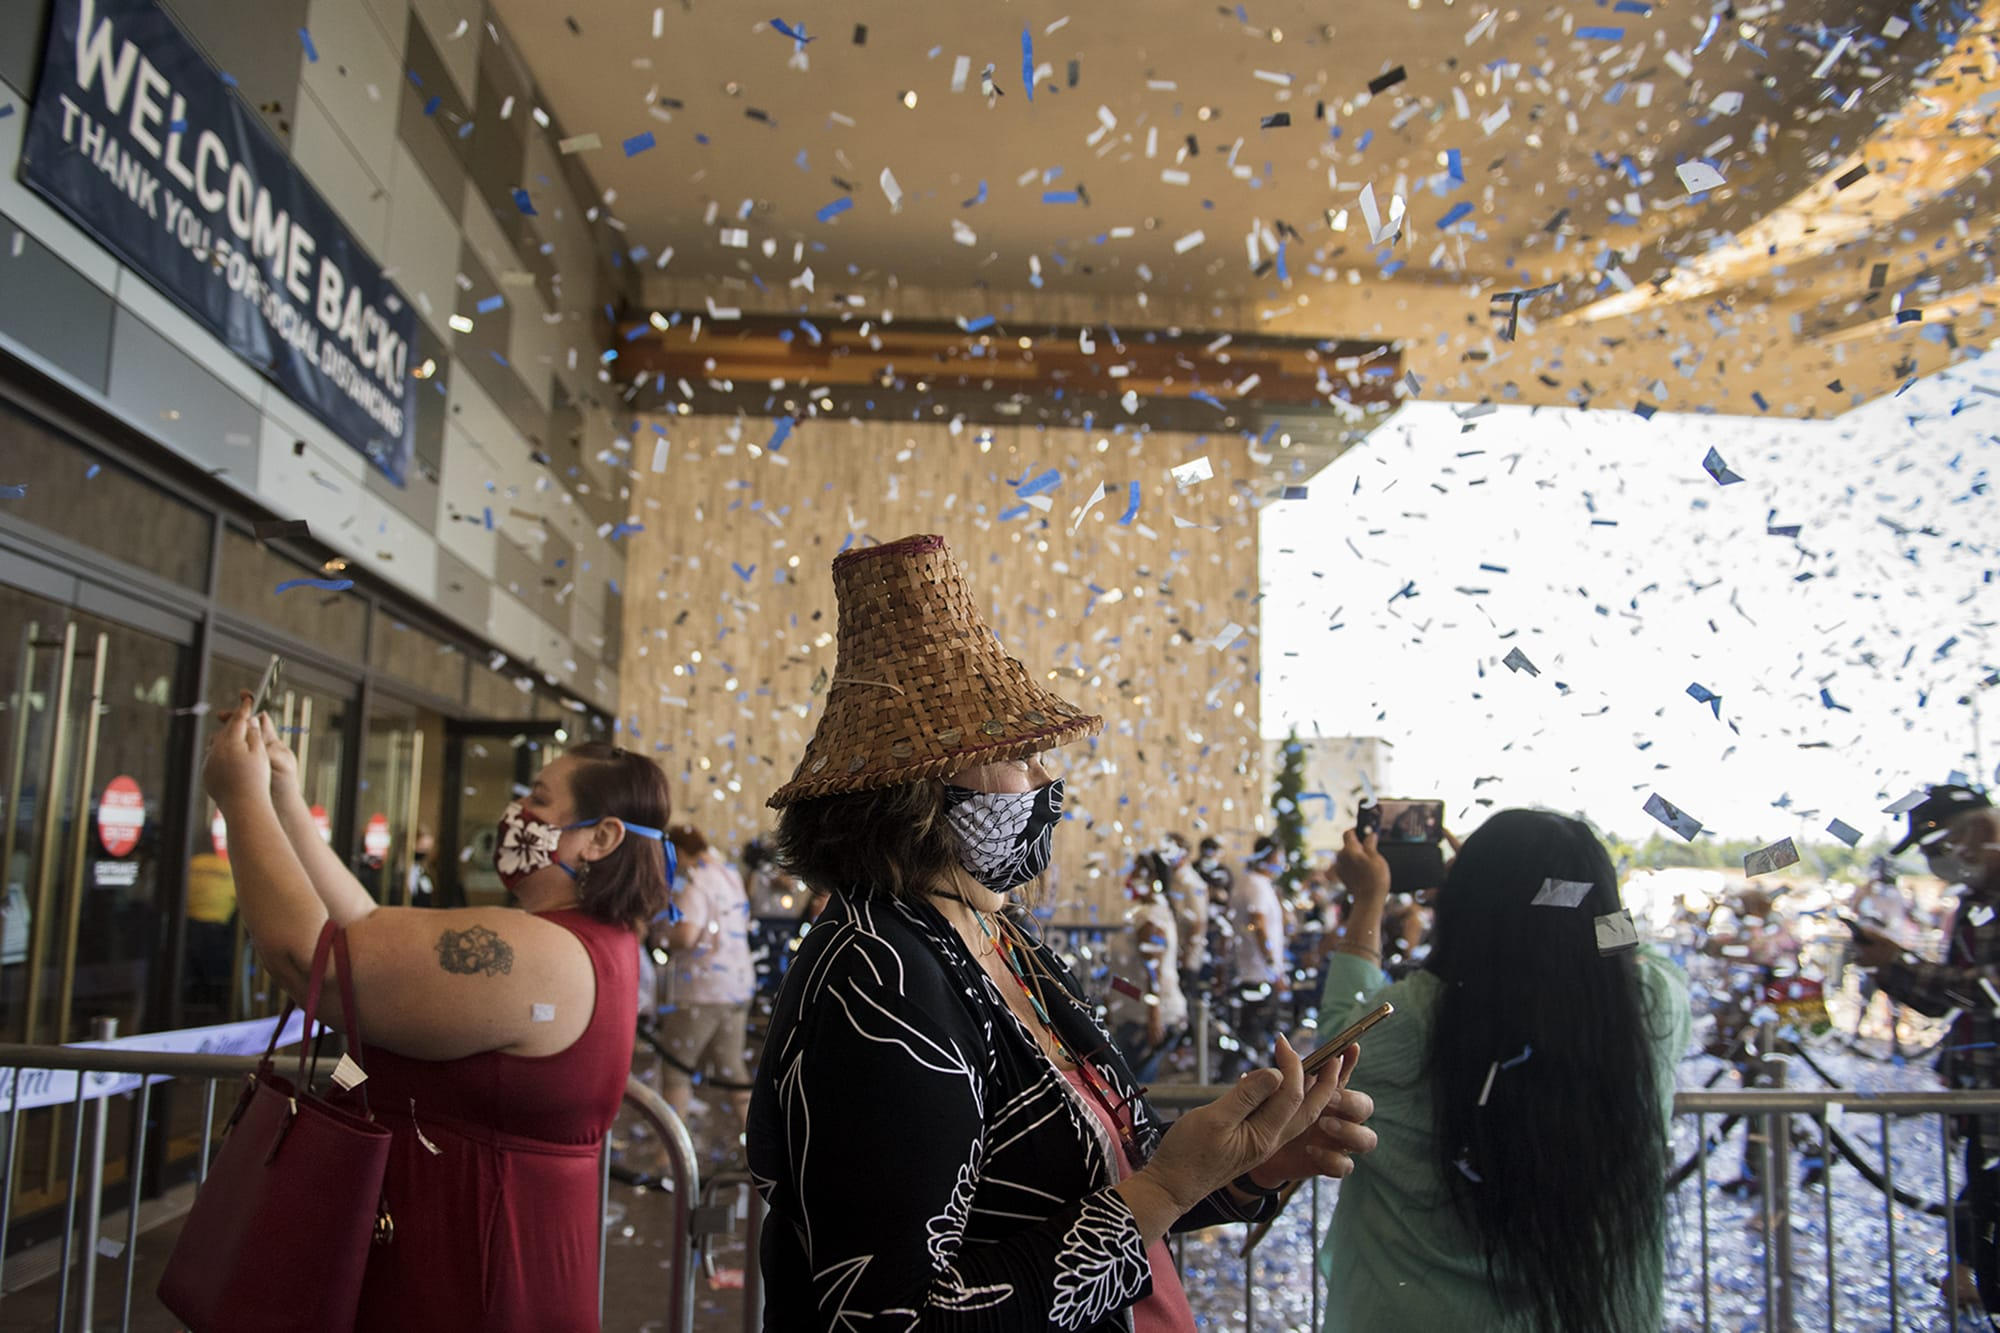 Katherine Vasquez, a Cowlitz Tribe councilwoman who lives Lacey, center, is surrounded by confetti as she celebrates the reopening of ilani Casino Resort with members of the public on Thursday morning, May 28, 2020. The casino has been closed for 70 days due to the COVID-19 pandemic. All guests are required to have their temperature checked upon arrival and to wear a mask. (Amanda Cowan/The Columbian)